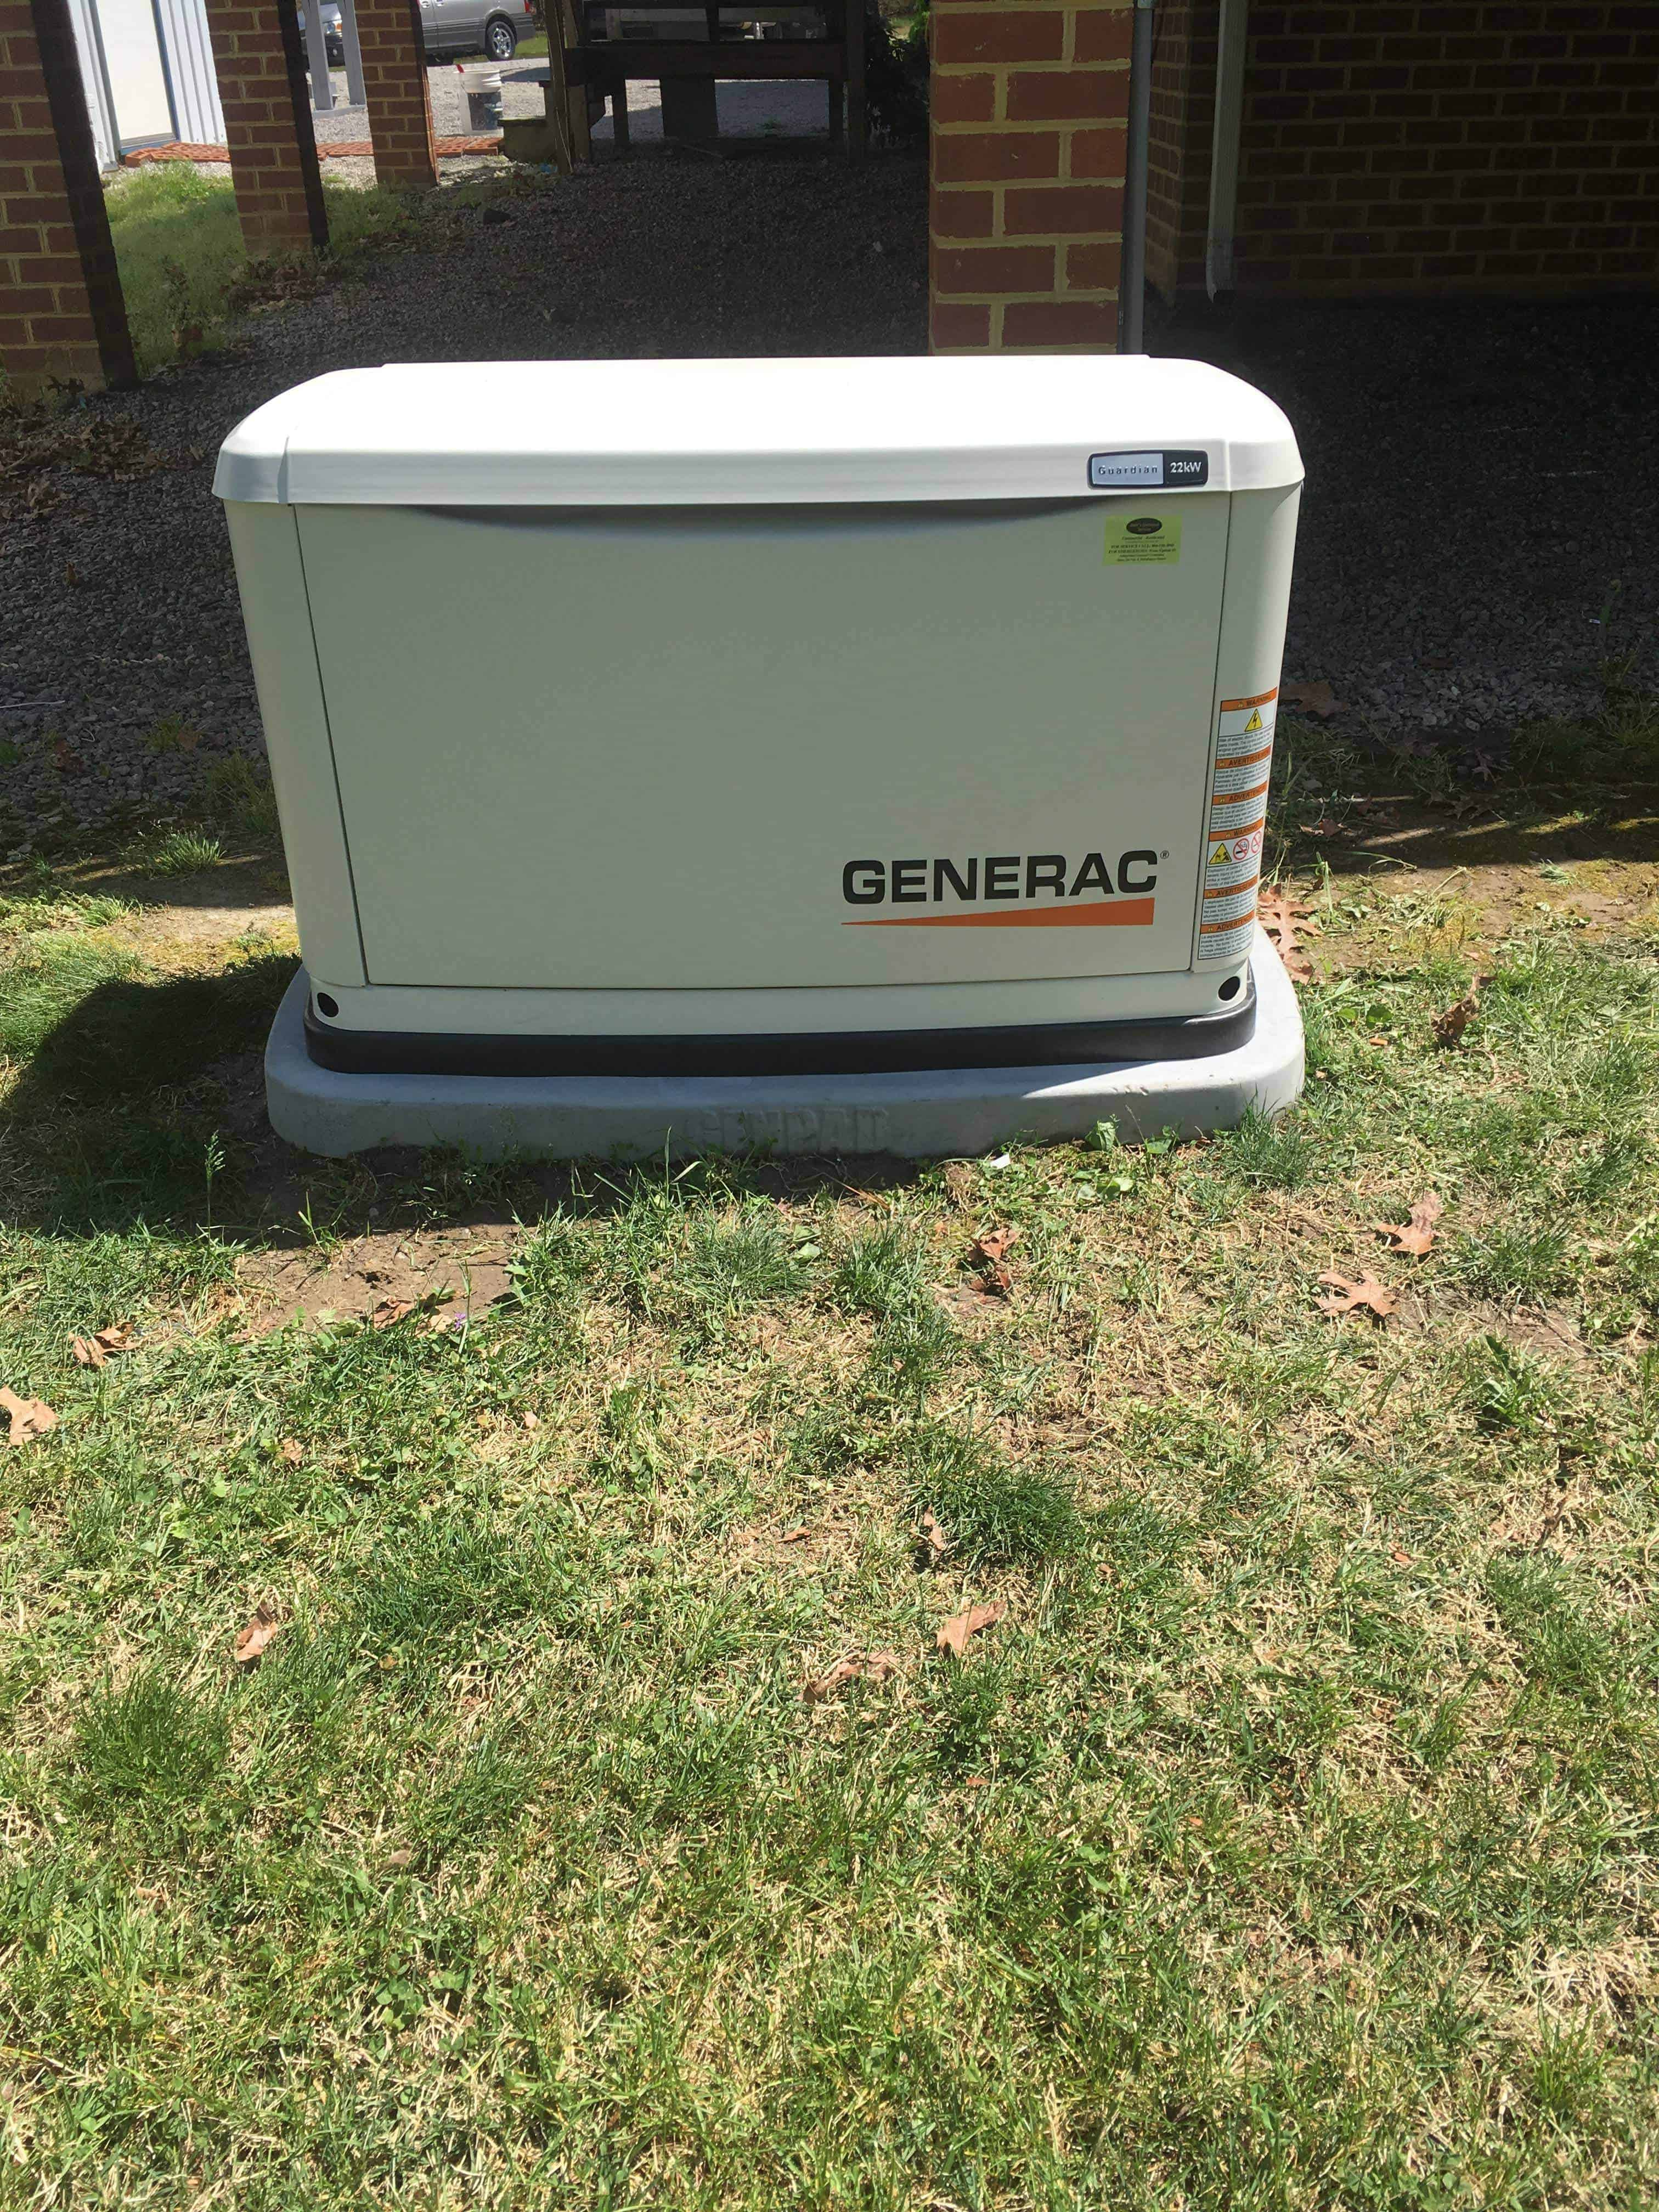 Generact Automatic Standby Generator Dinwiddie County